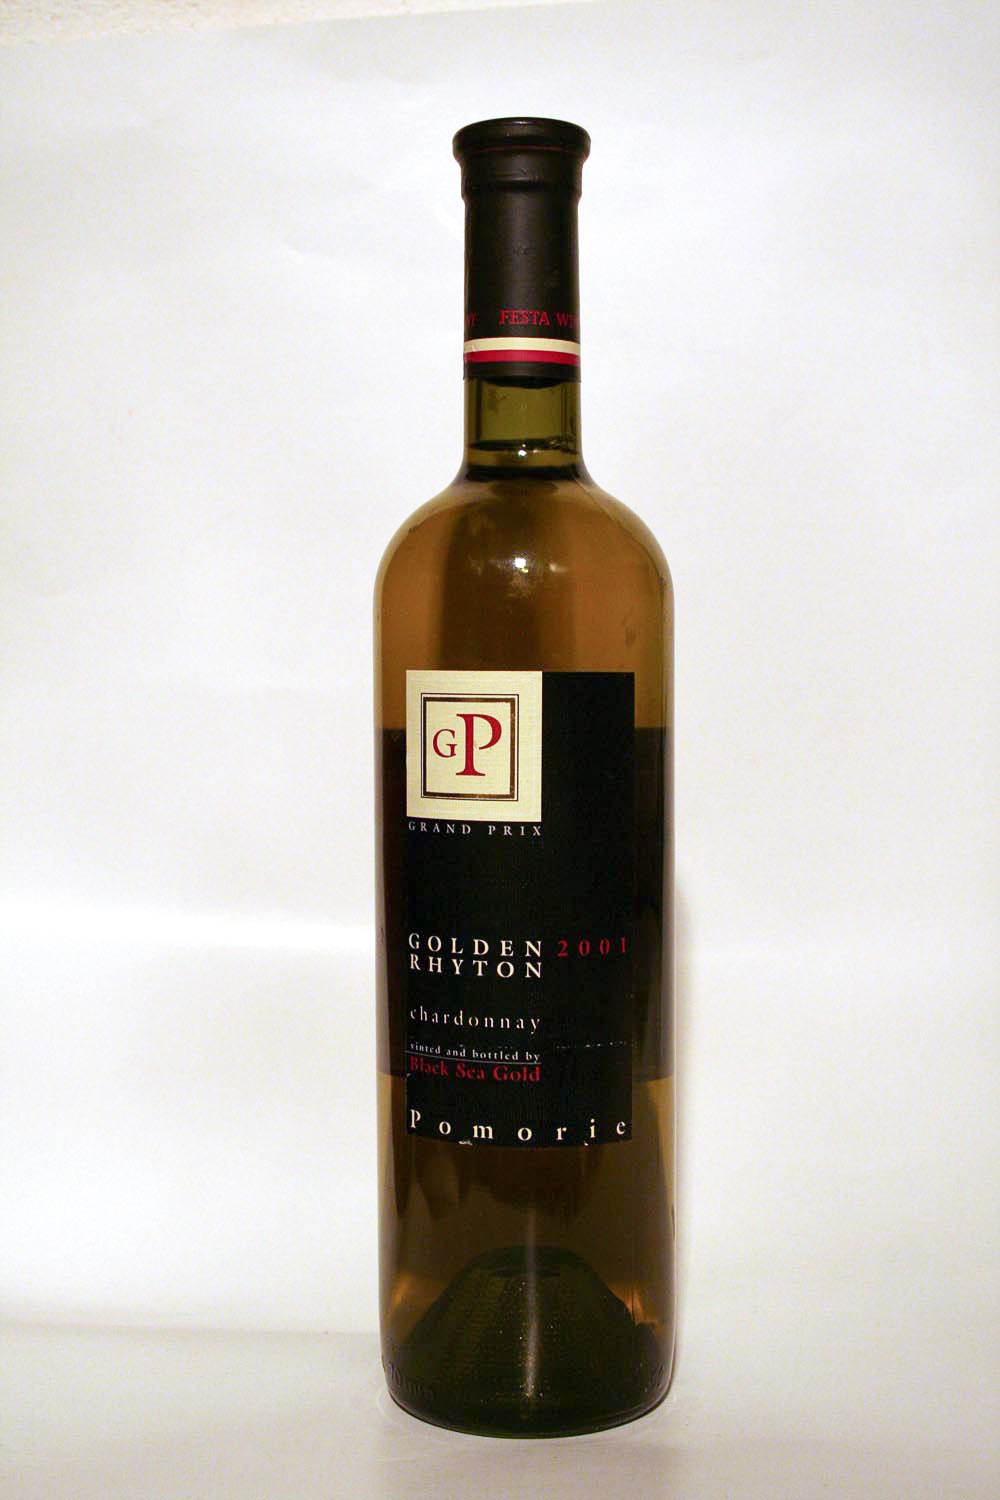 GP Golden Rhyton Chardonnay 2001